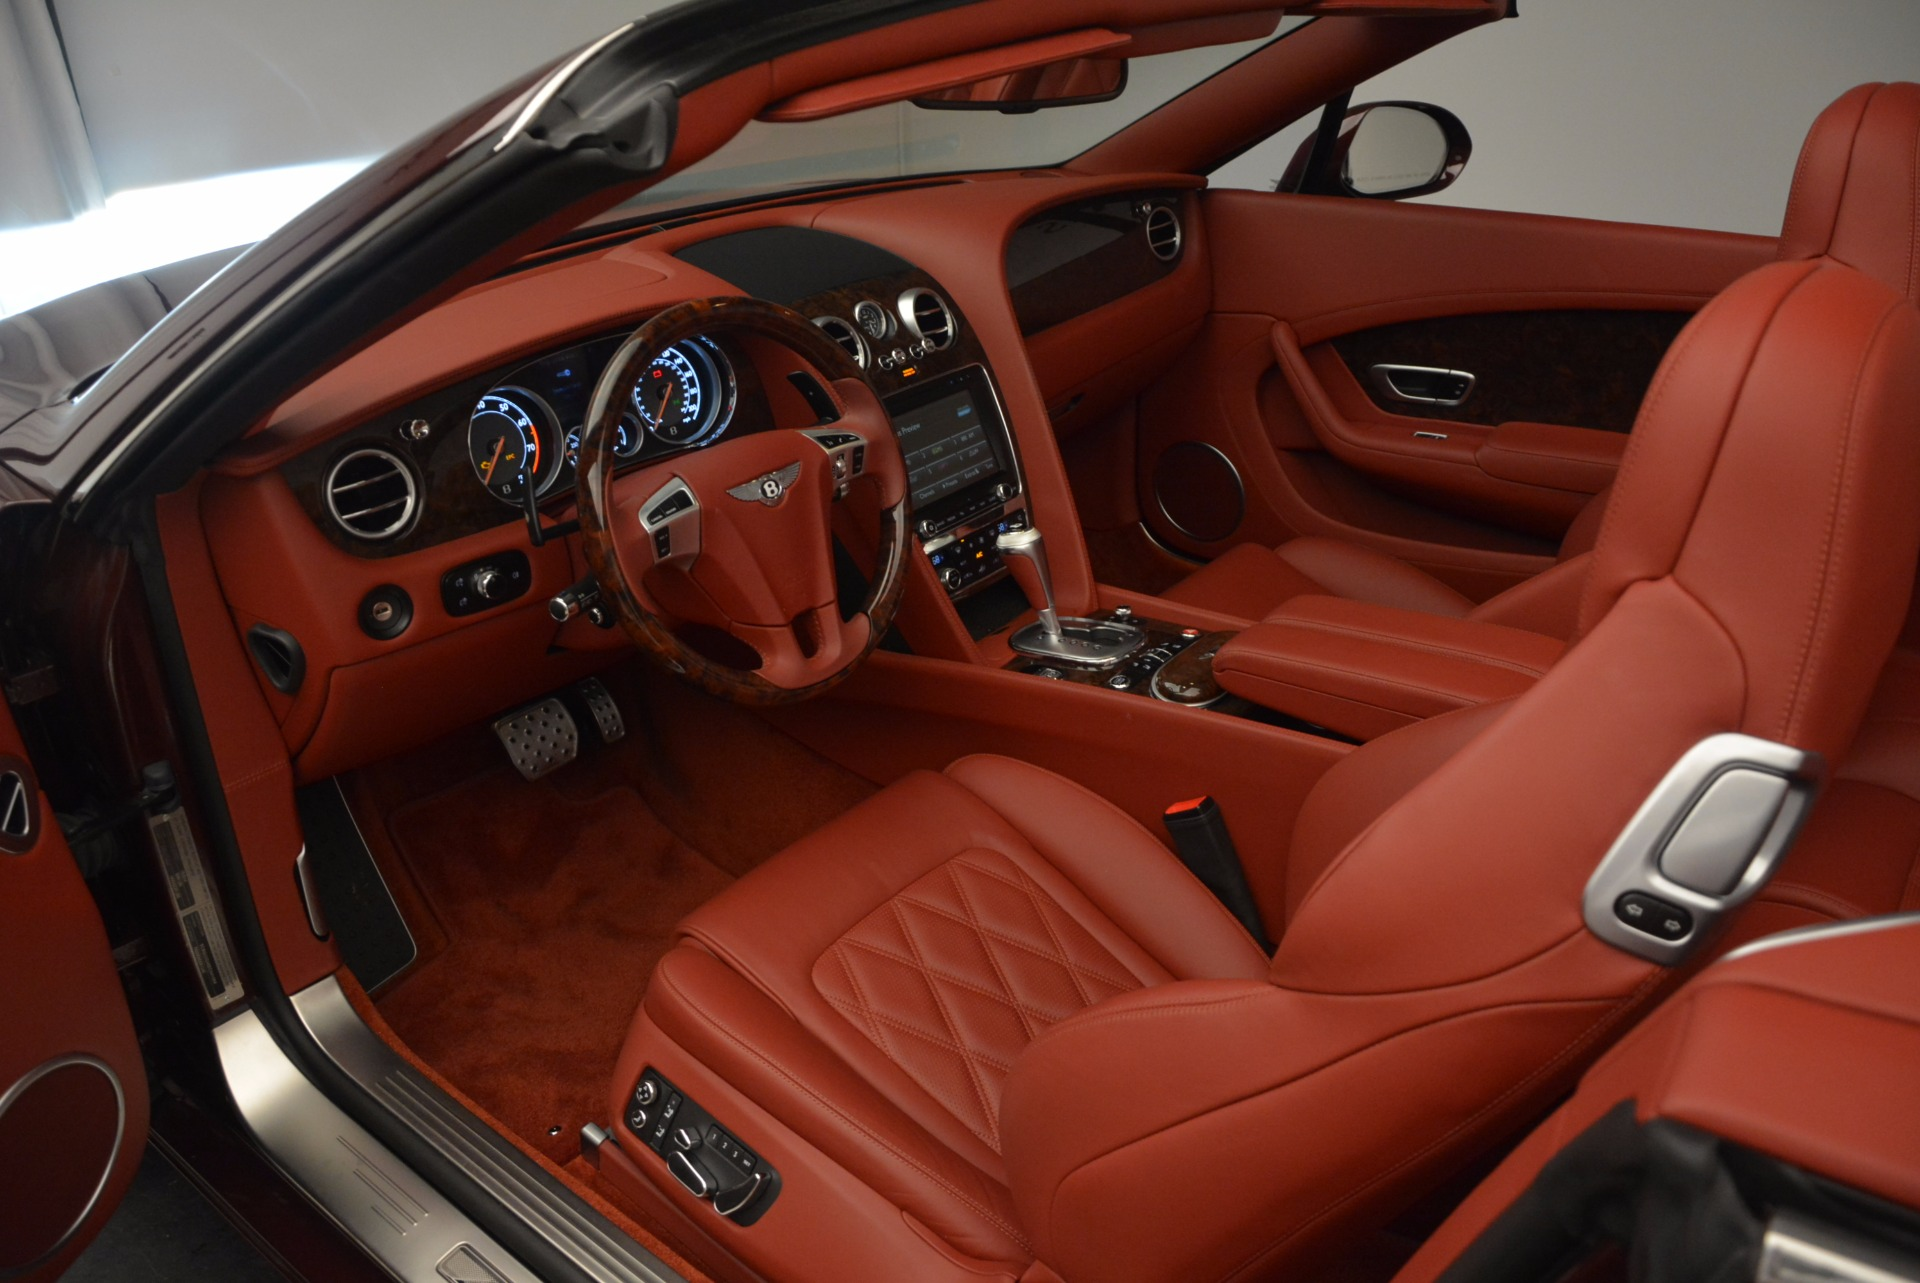 Used 2014 Bentley Continental GT W12 For Sale In Westport, CT 1516_p30